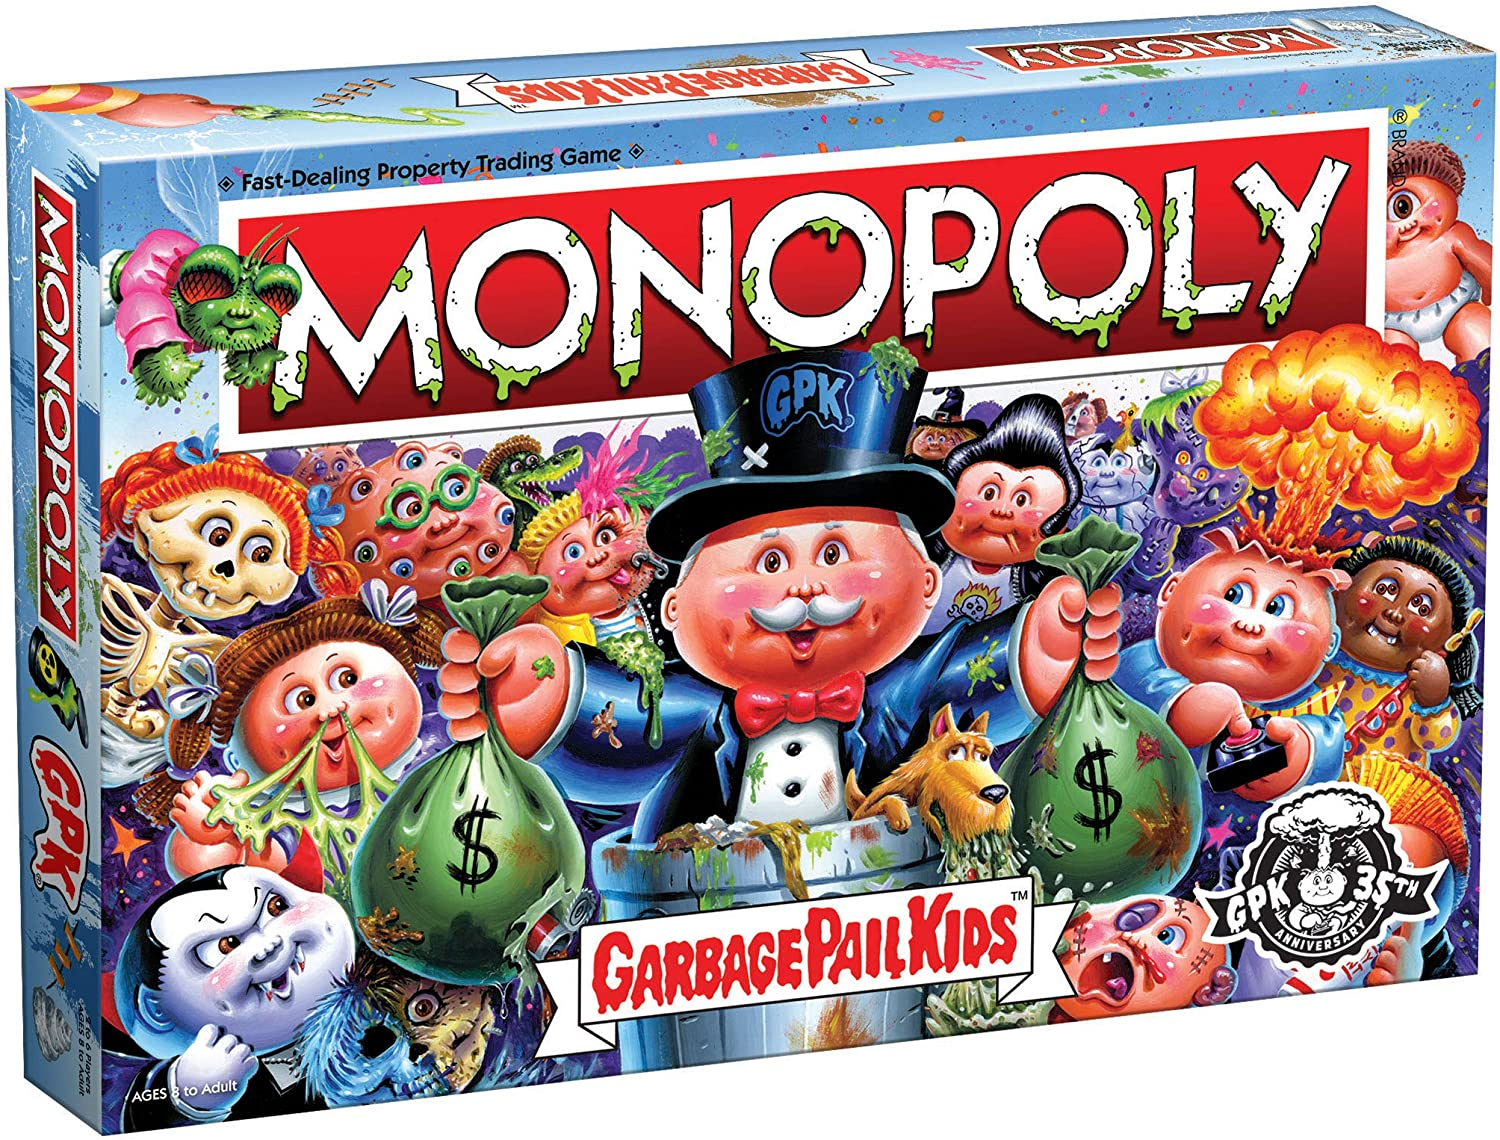 Monopoly Garbage Pail Kids   Based on Topps Company Garbage Pail Kids Trading Cards   Collectible Monopoly Game   Officially Licensed Garbage Pail Kids Game